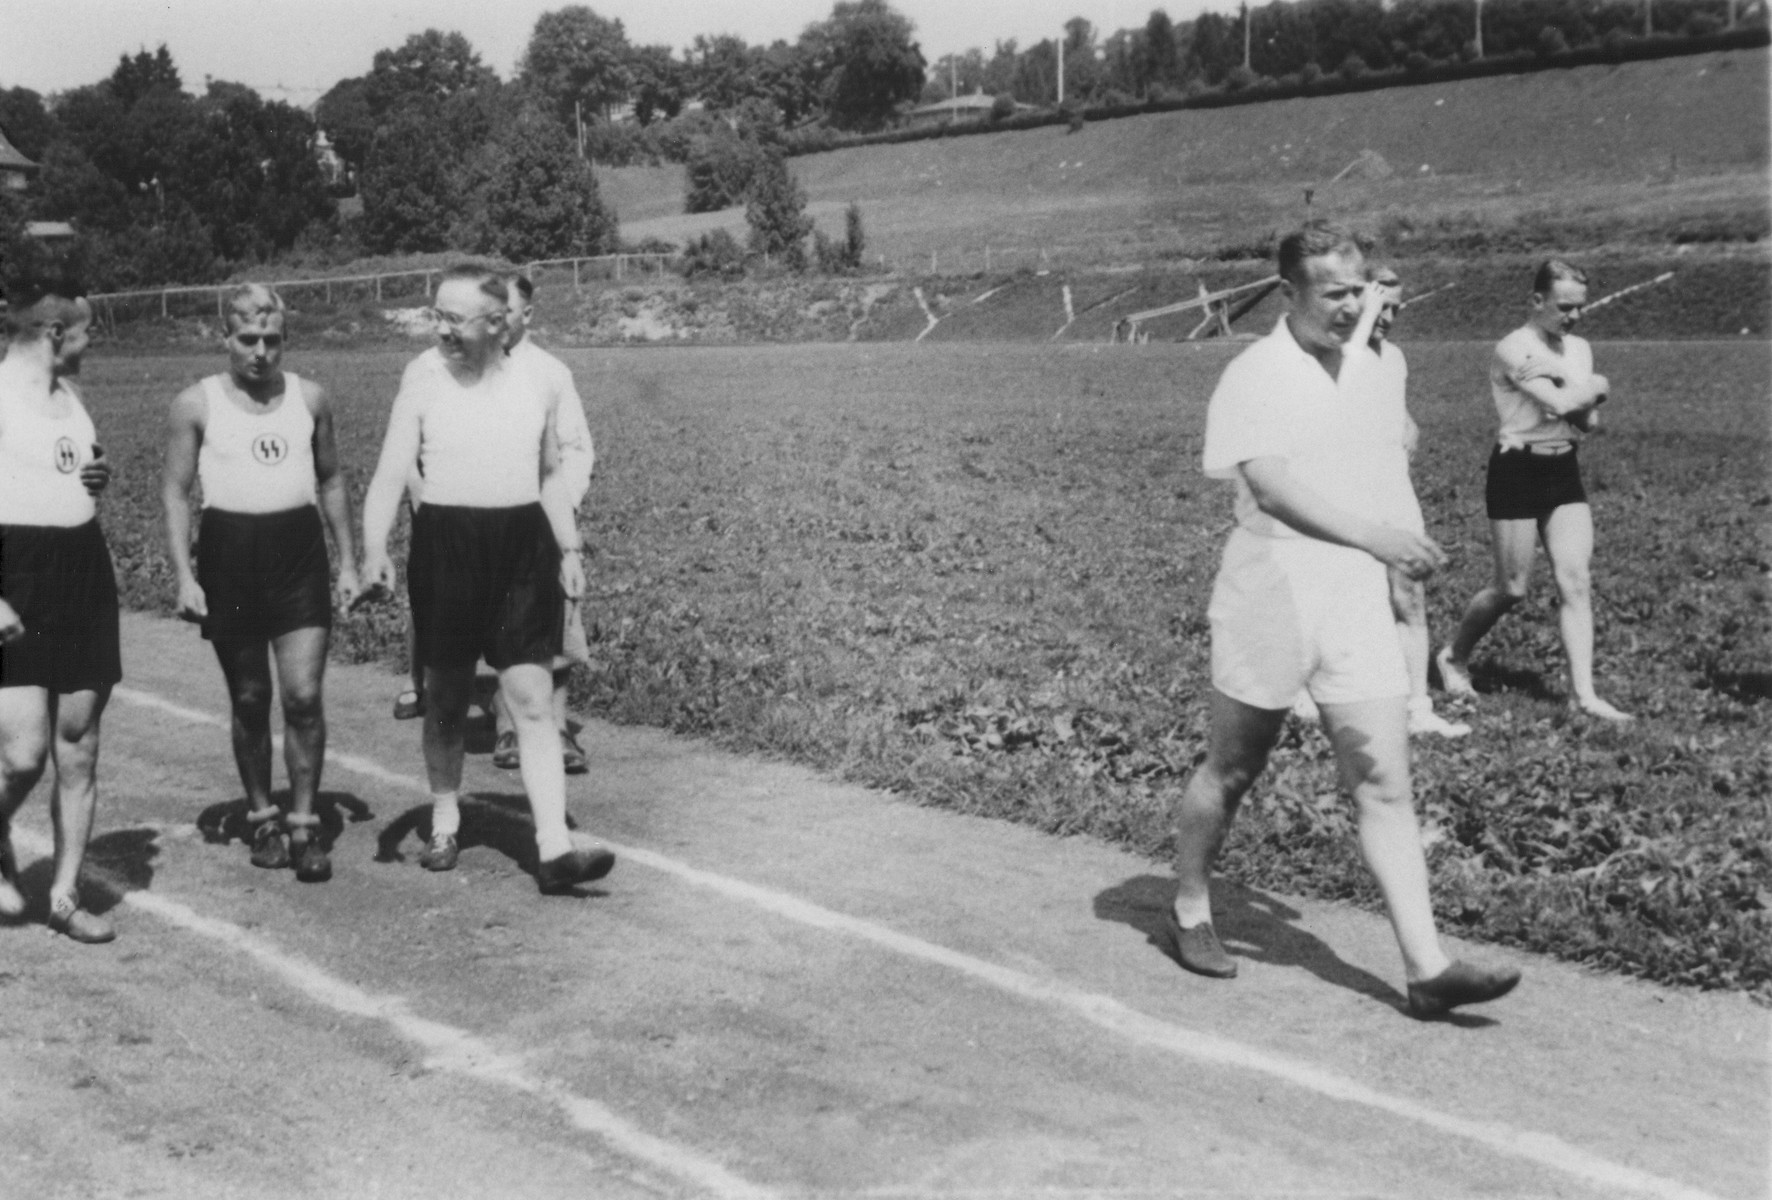 Heinrich Himmler walks along an outdoor track at the SS officers school in Bad Tolz, Germany.  Also pictured is Himmler's adjutant Karl Wolff (ahead of Himmler in the white shirt and shorts).